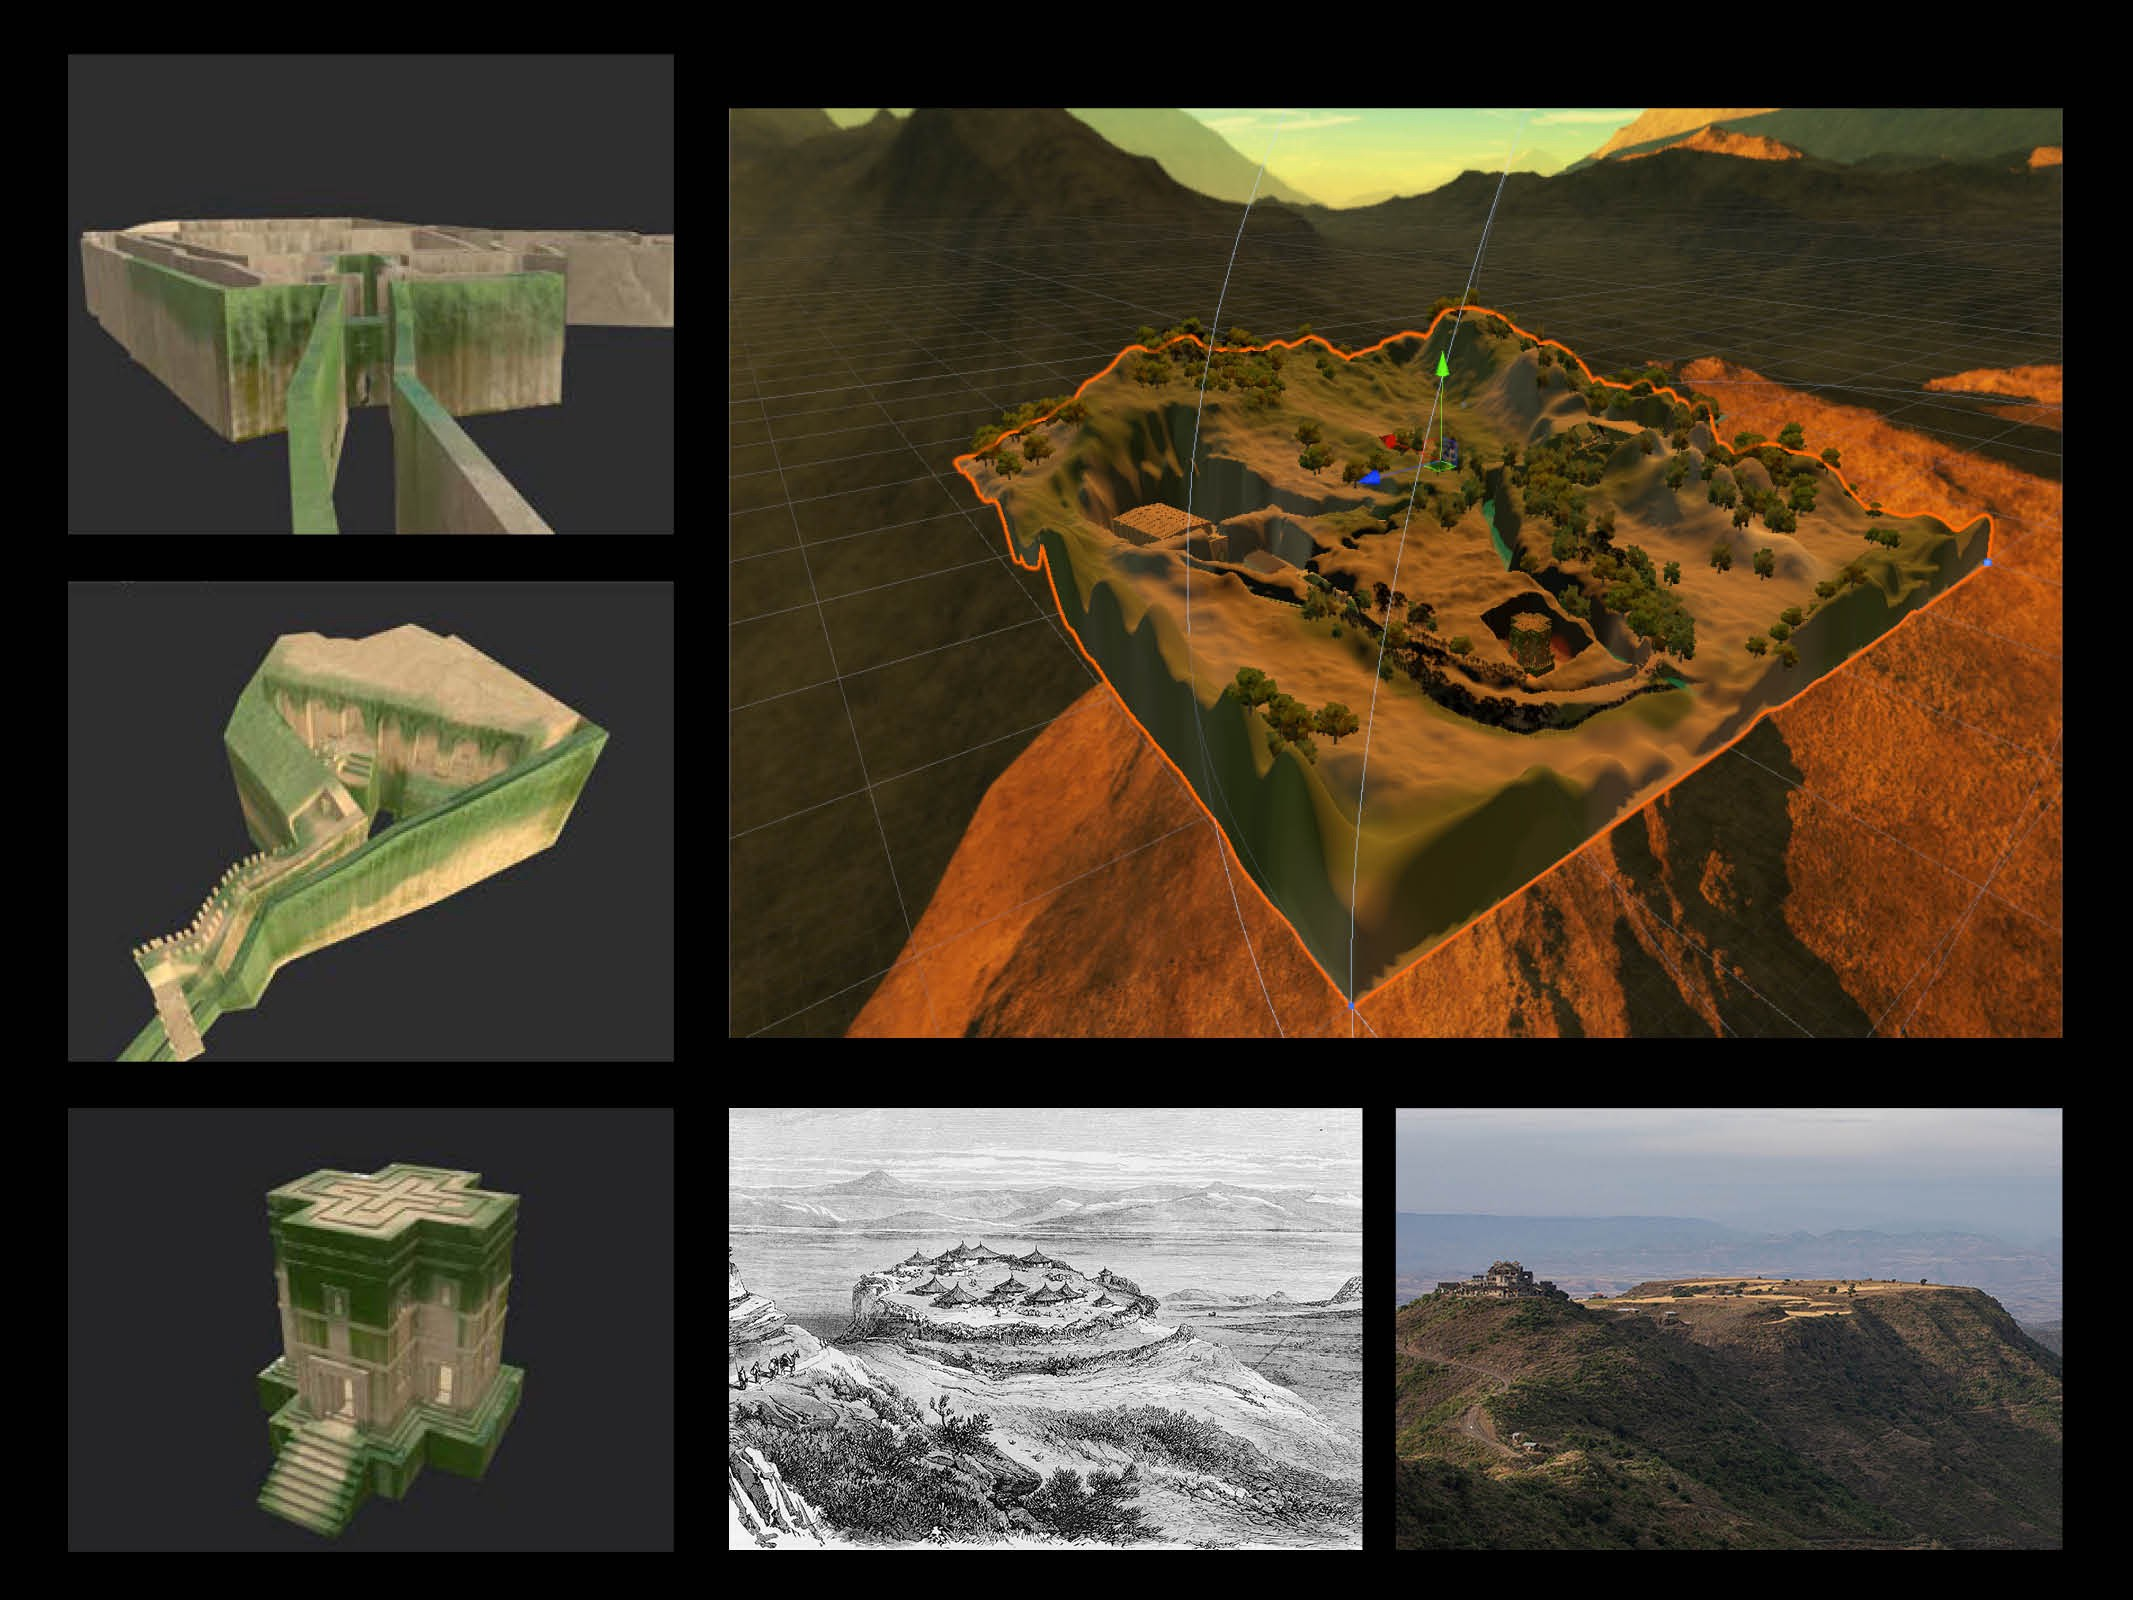 A 3D digital rendering of Ethiopian heritage sites, specifically the Lalibela Churches.